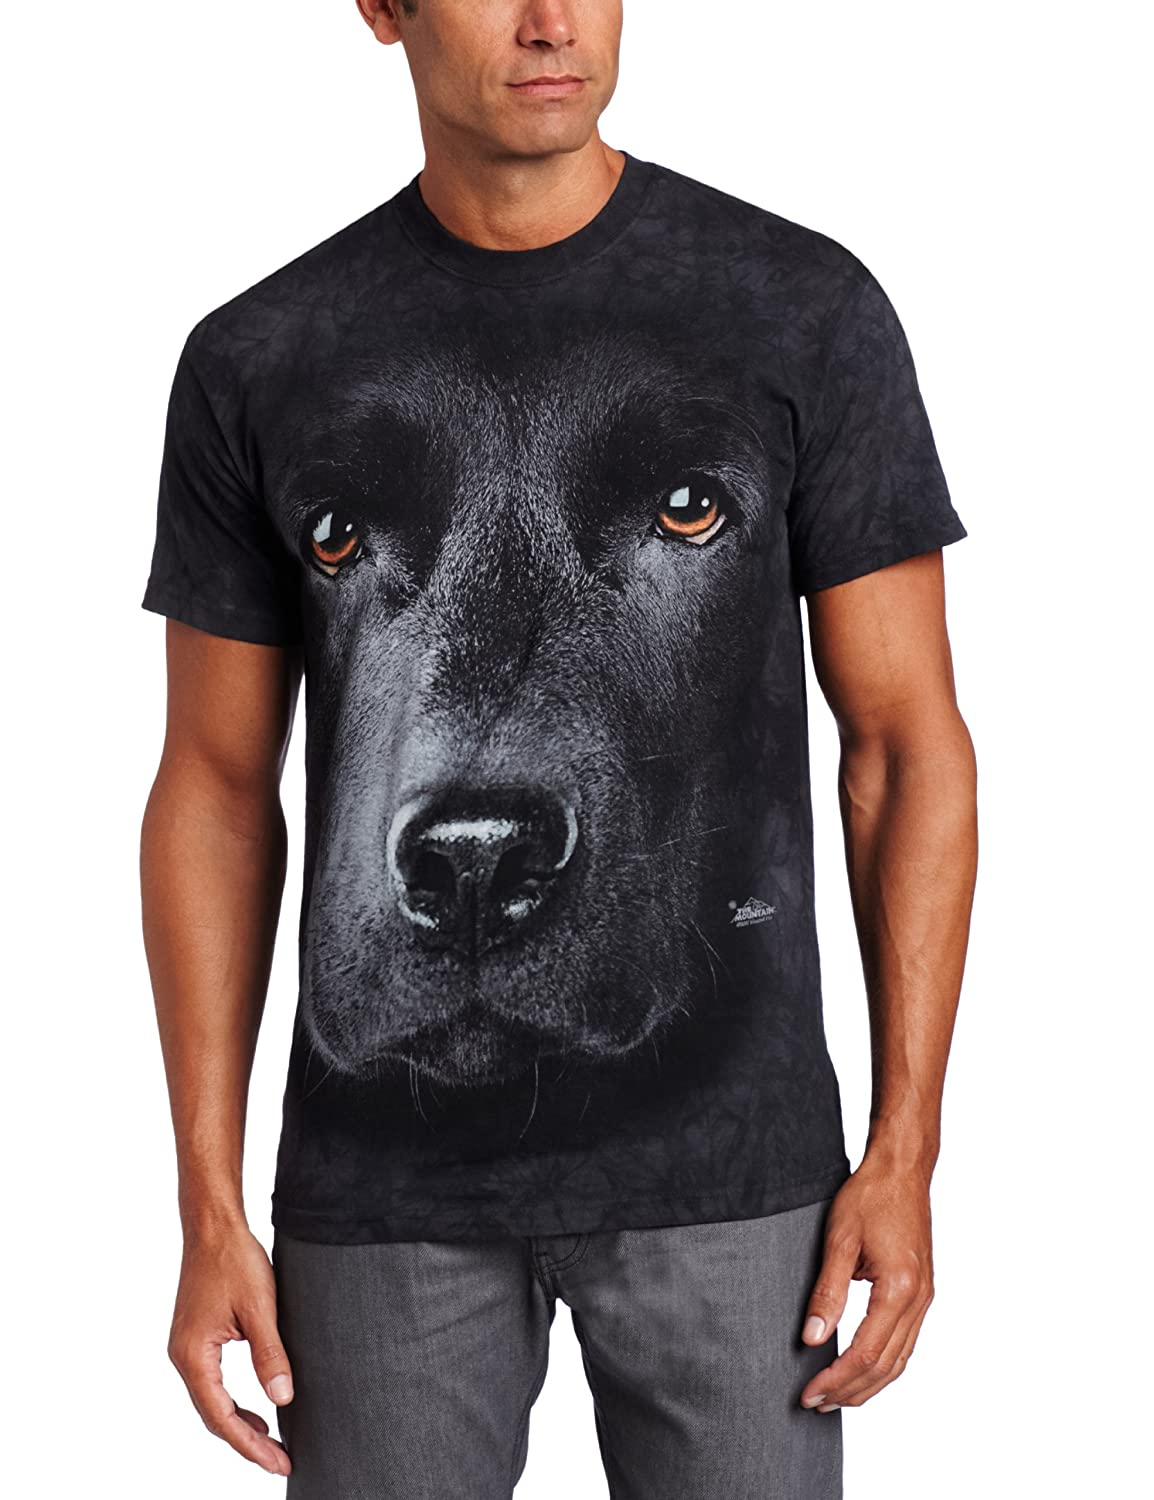 Amazon.com: The Mountain Unisex-Adult Black Lab Face Short Sleeve ...